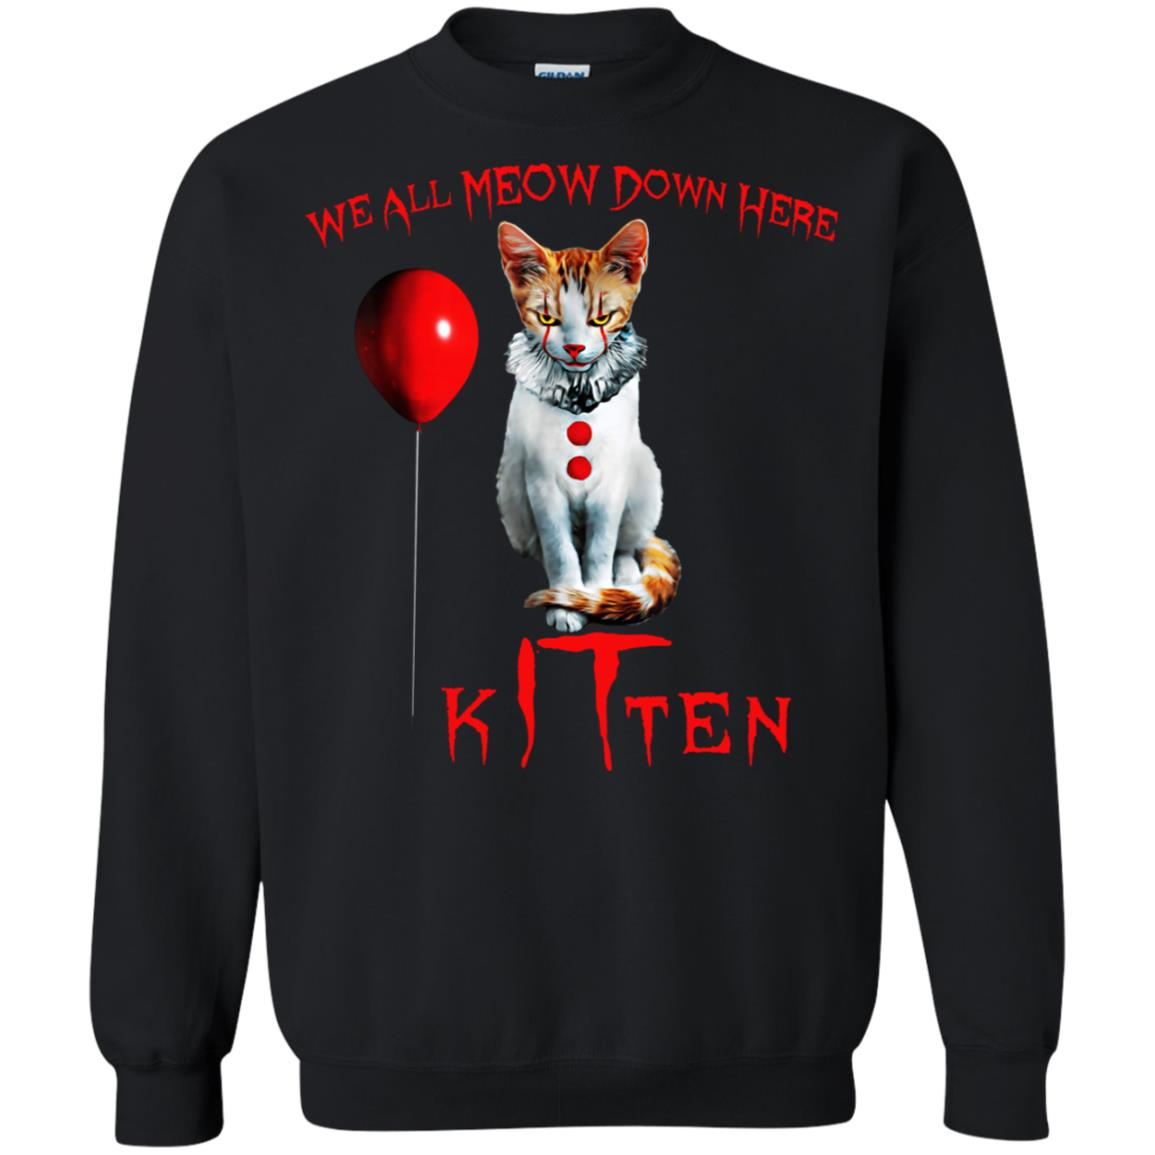 It Horror Cats We All Meow Down Here Kitten Sweatshirt Shop Gucci